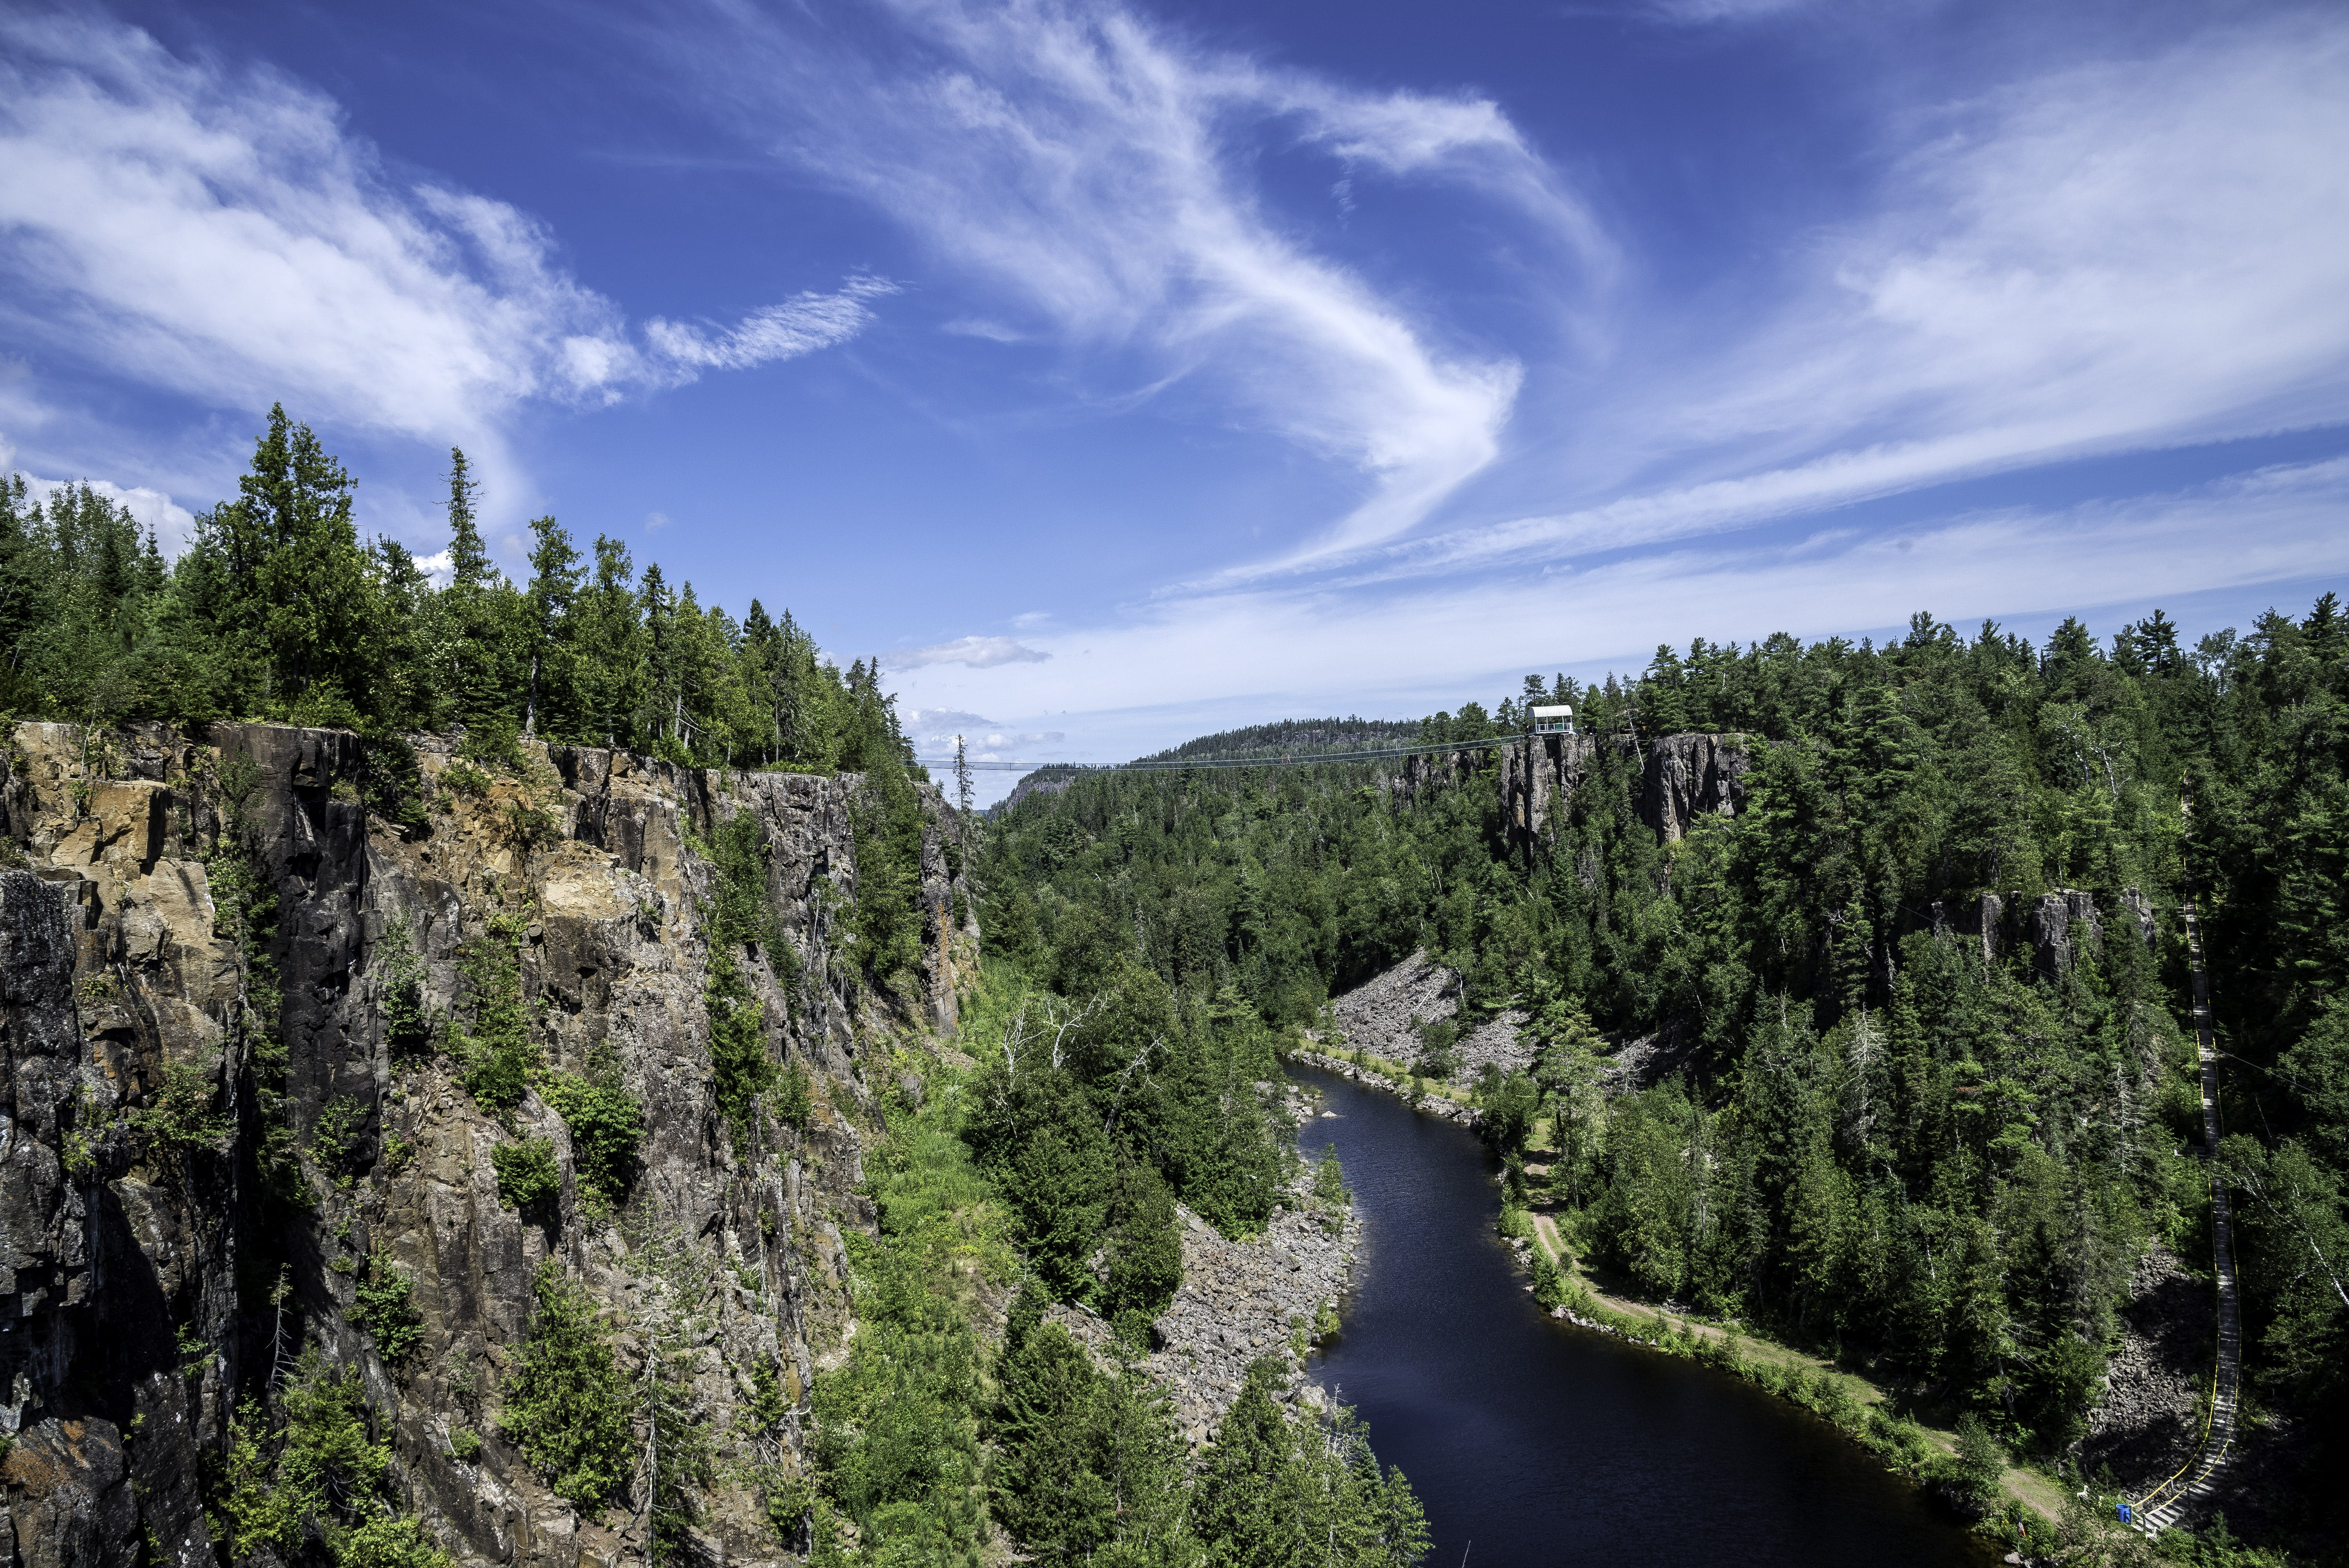 Landscape Photography of River and Trees Under Blue Sky